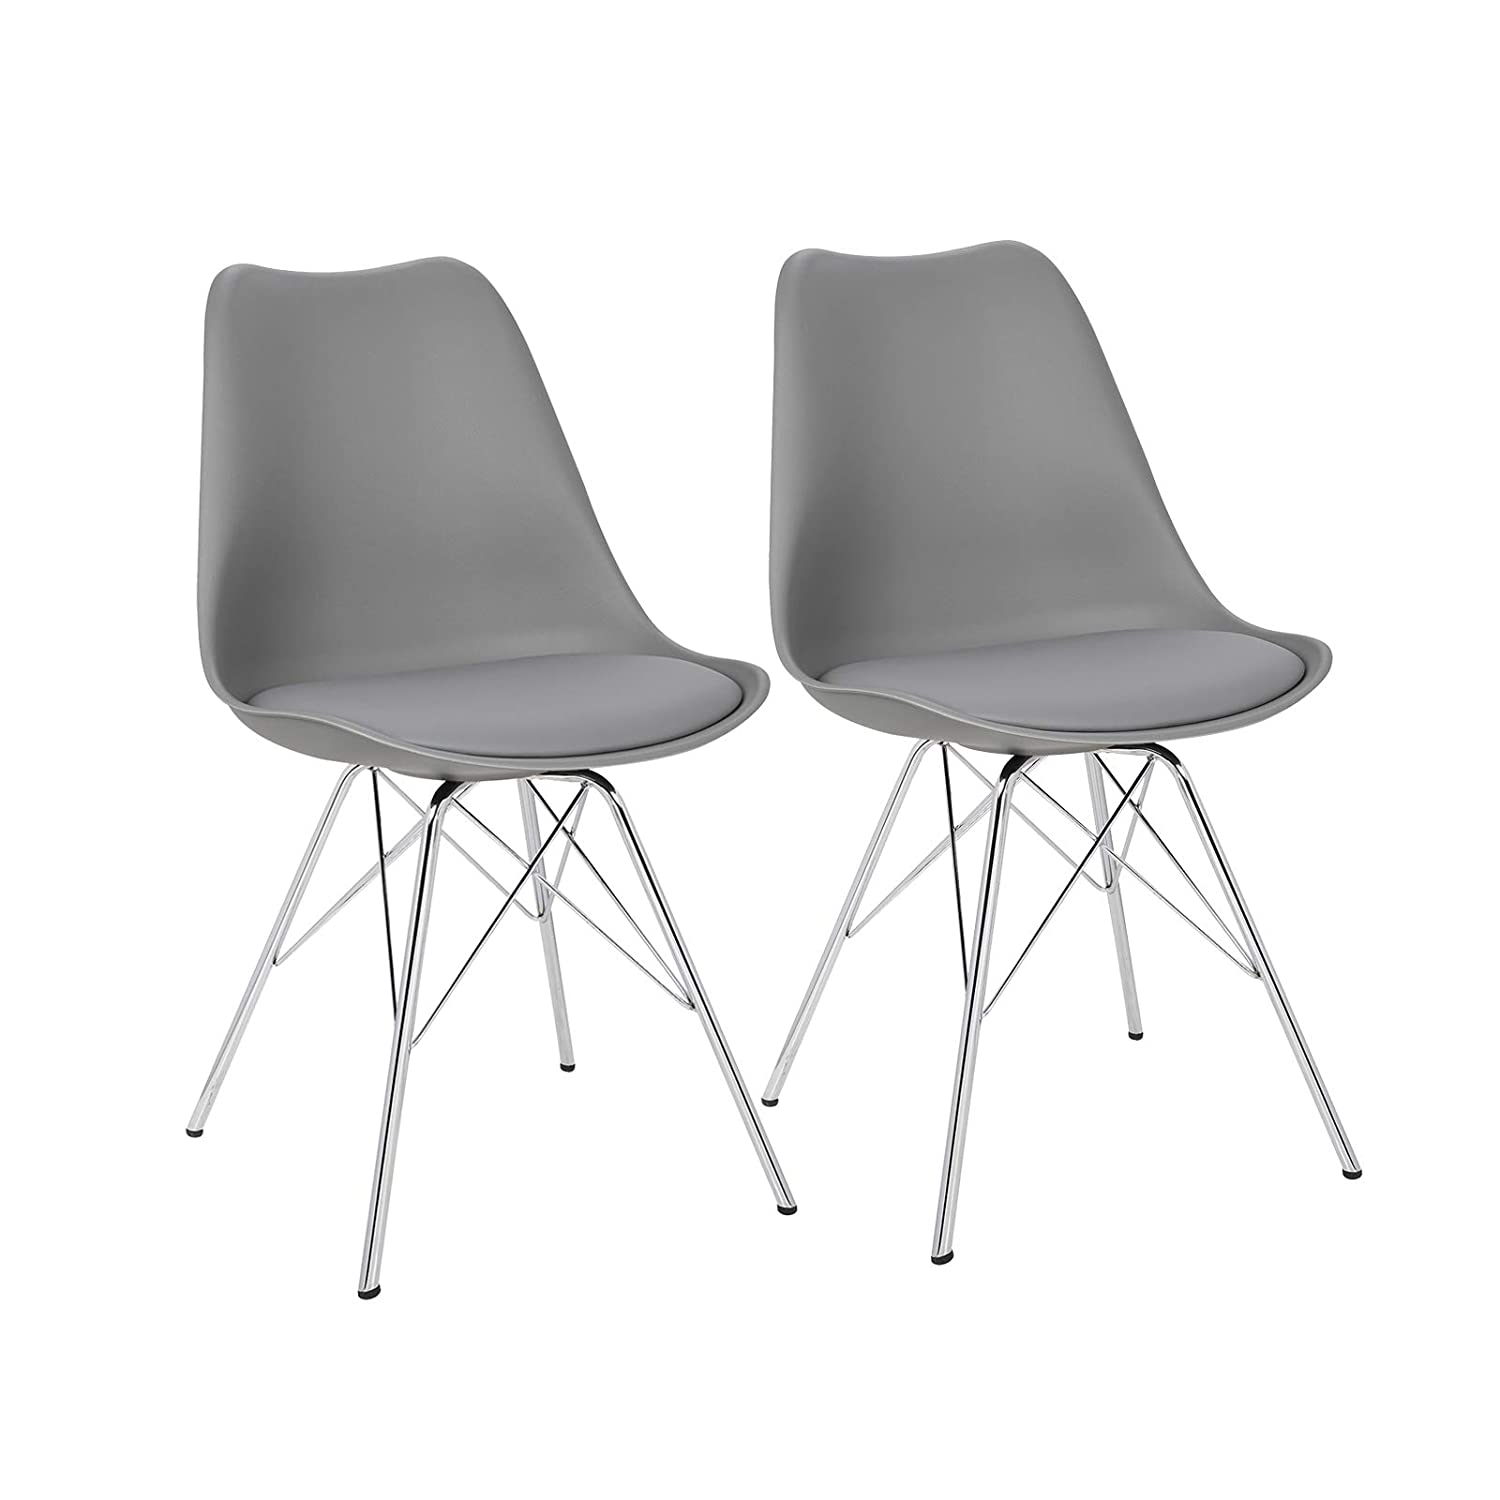 Llivekit Dining Chairs Grey Soft Cushions Modern Kitchen Chairs With Chrome Steel Legs Home Kitchen Furniture